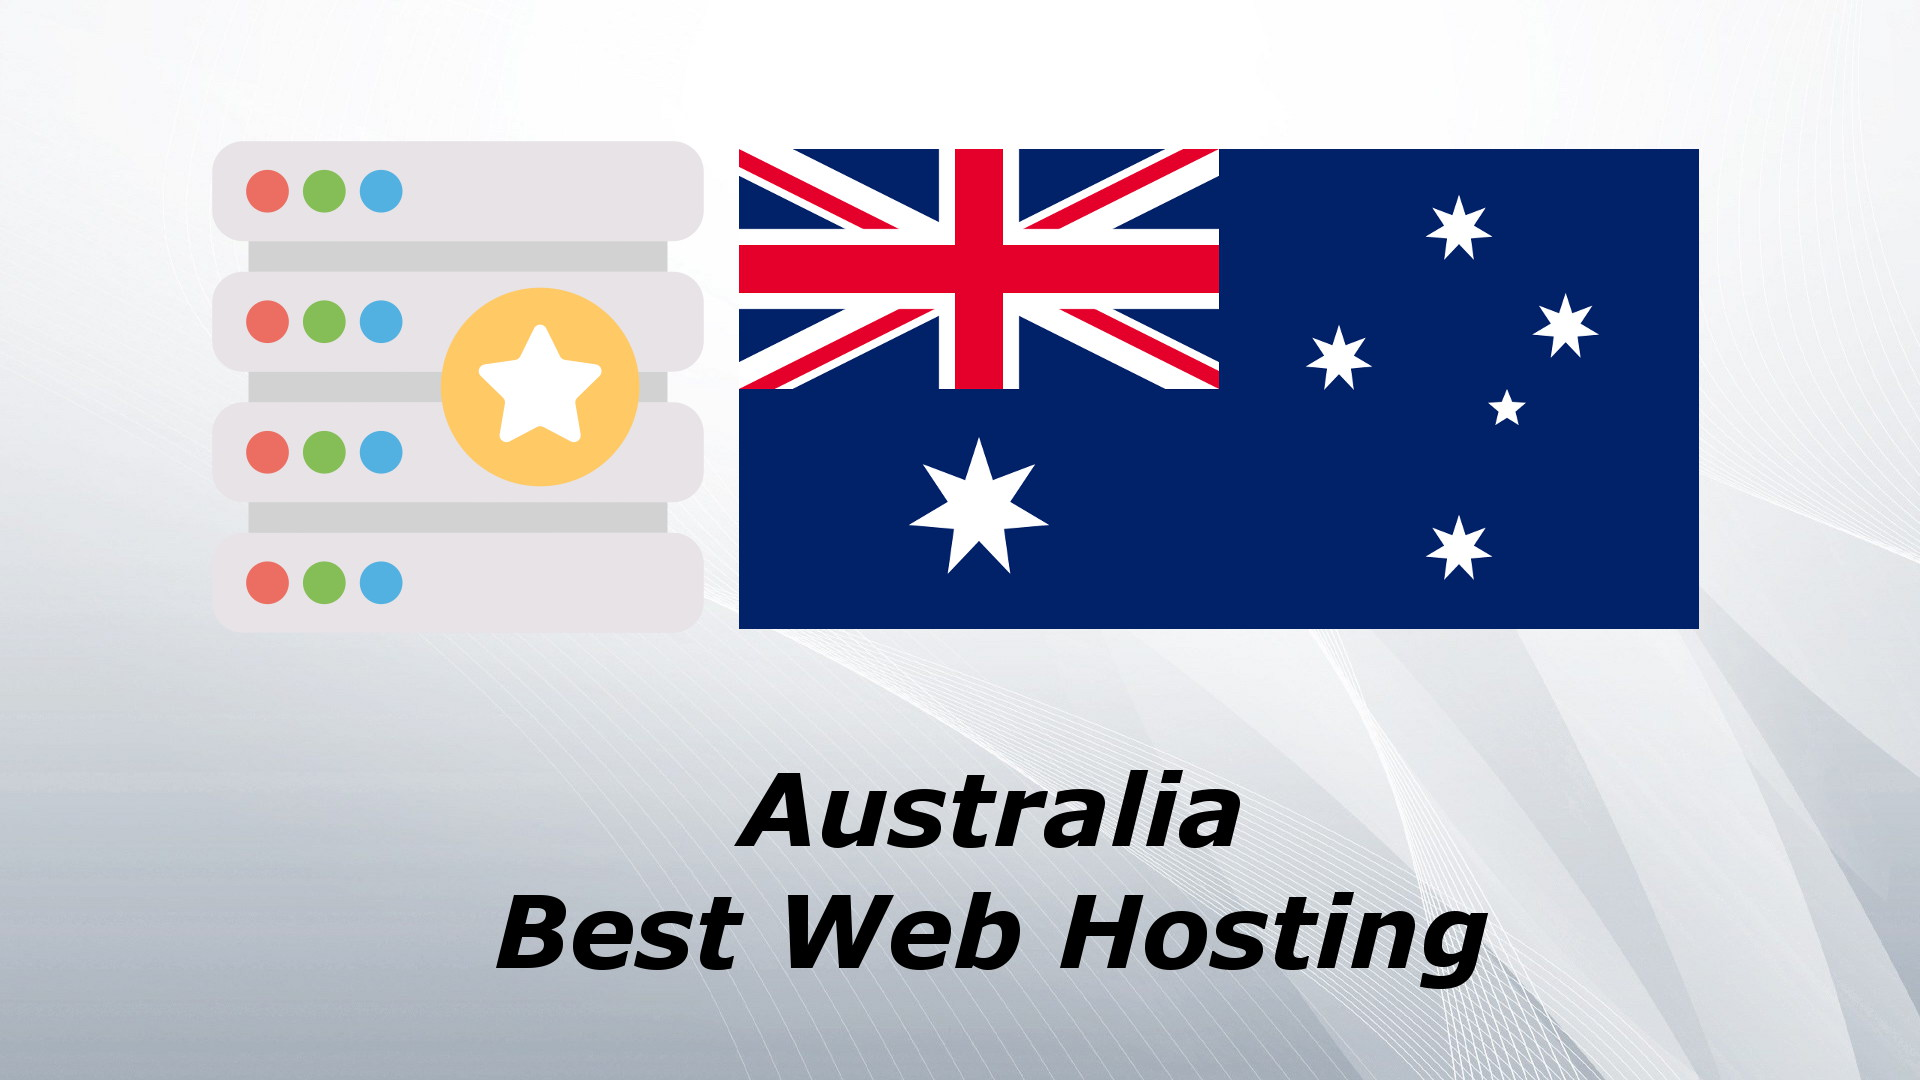 Australia Best Web Hosting